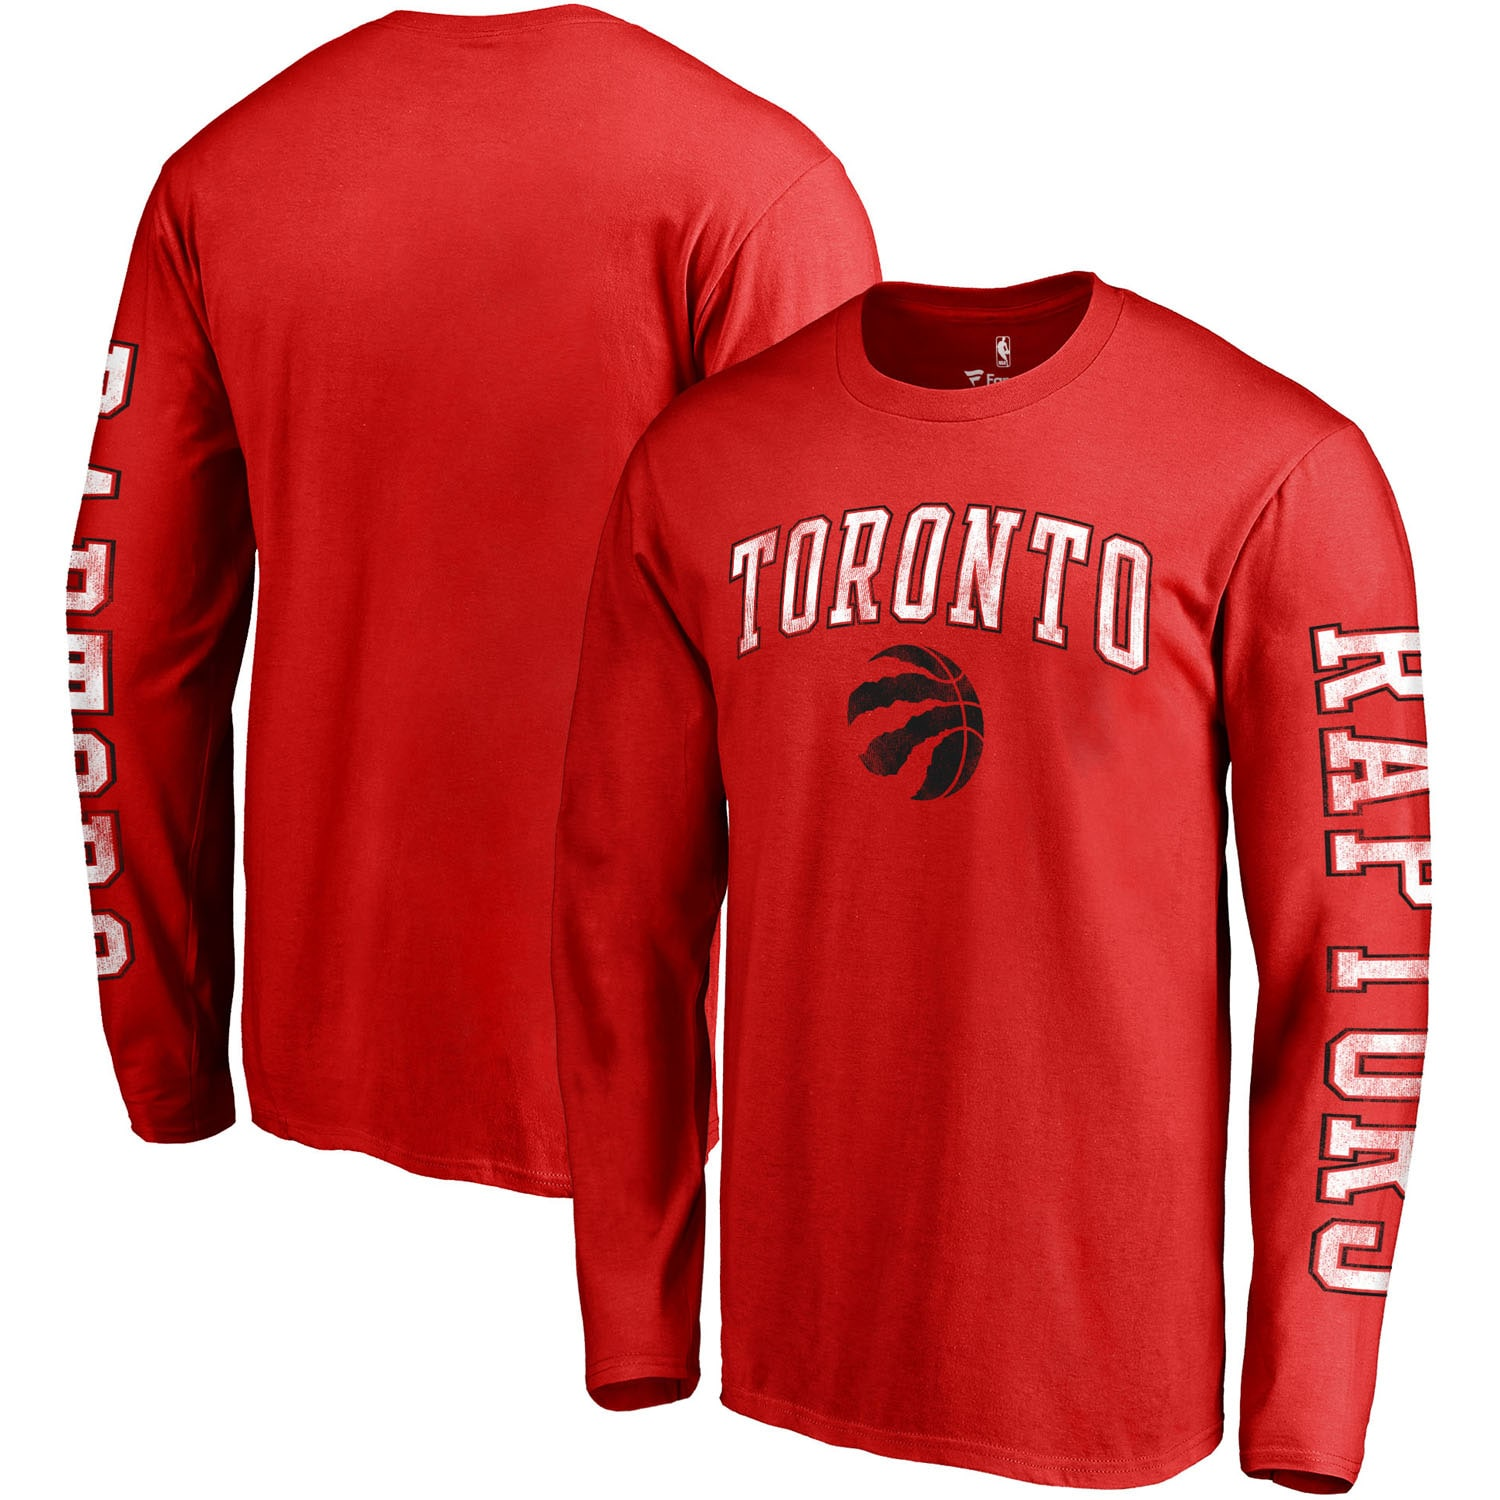 Toronto Raptors Fanatics Branded Distressed Arch Primary Logo Long Sleeve T-Shirt - Red